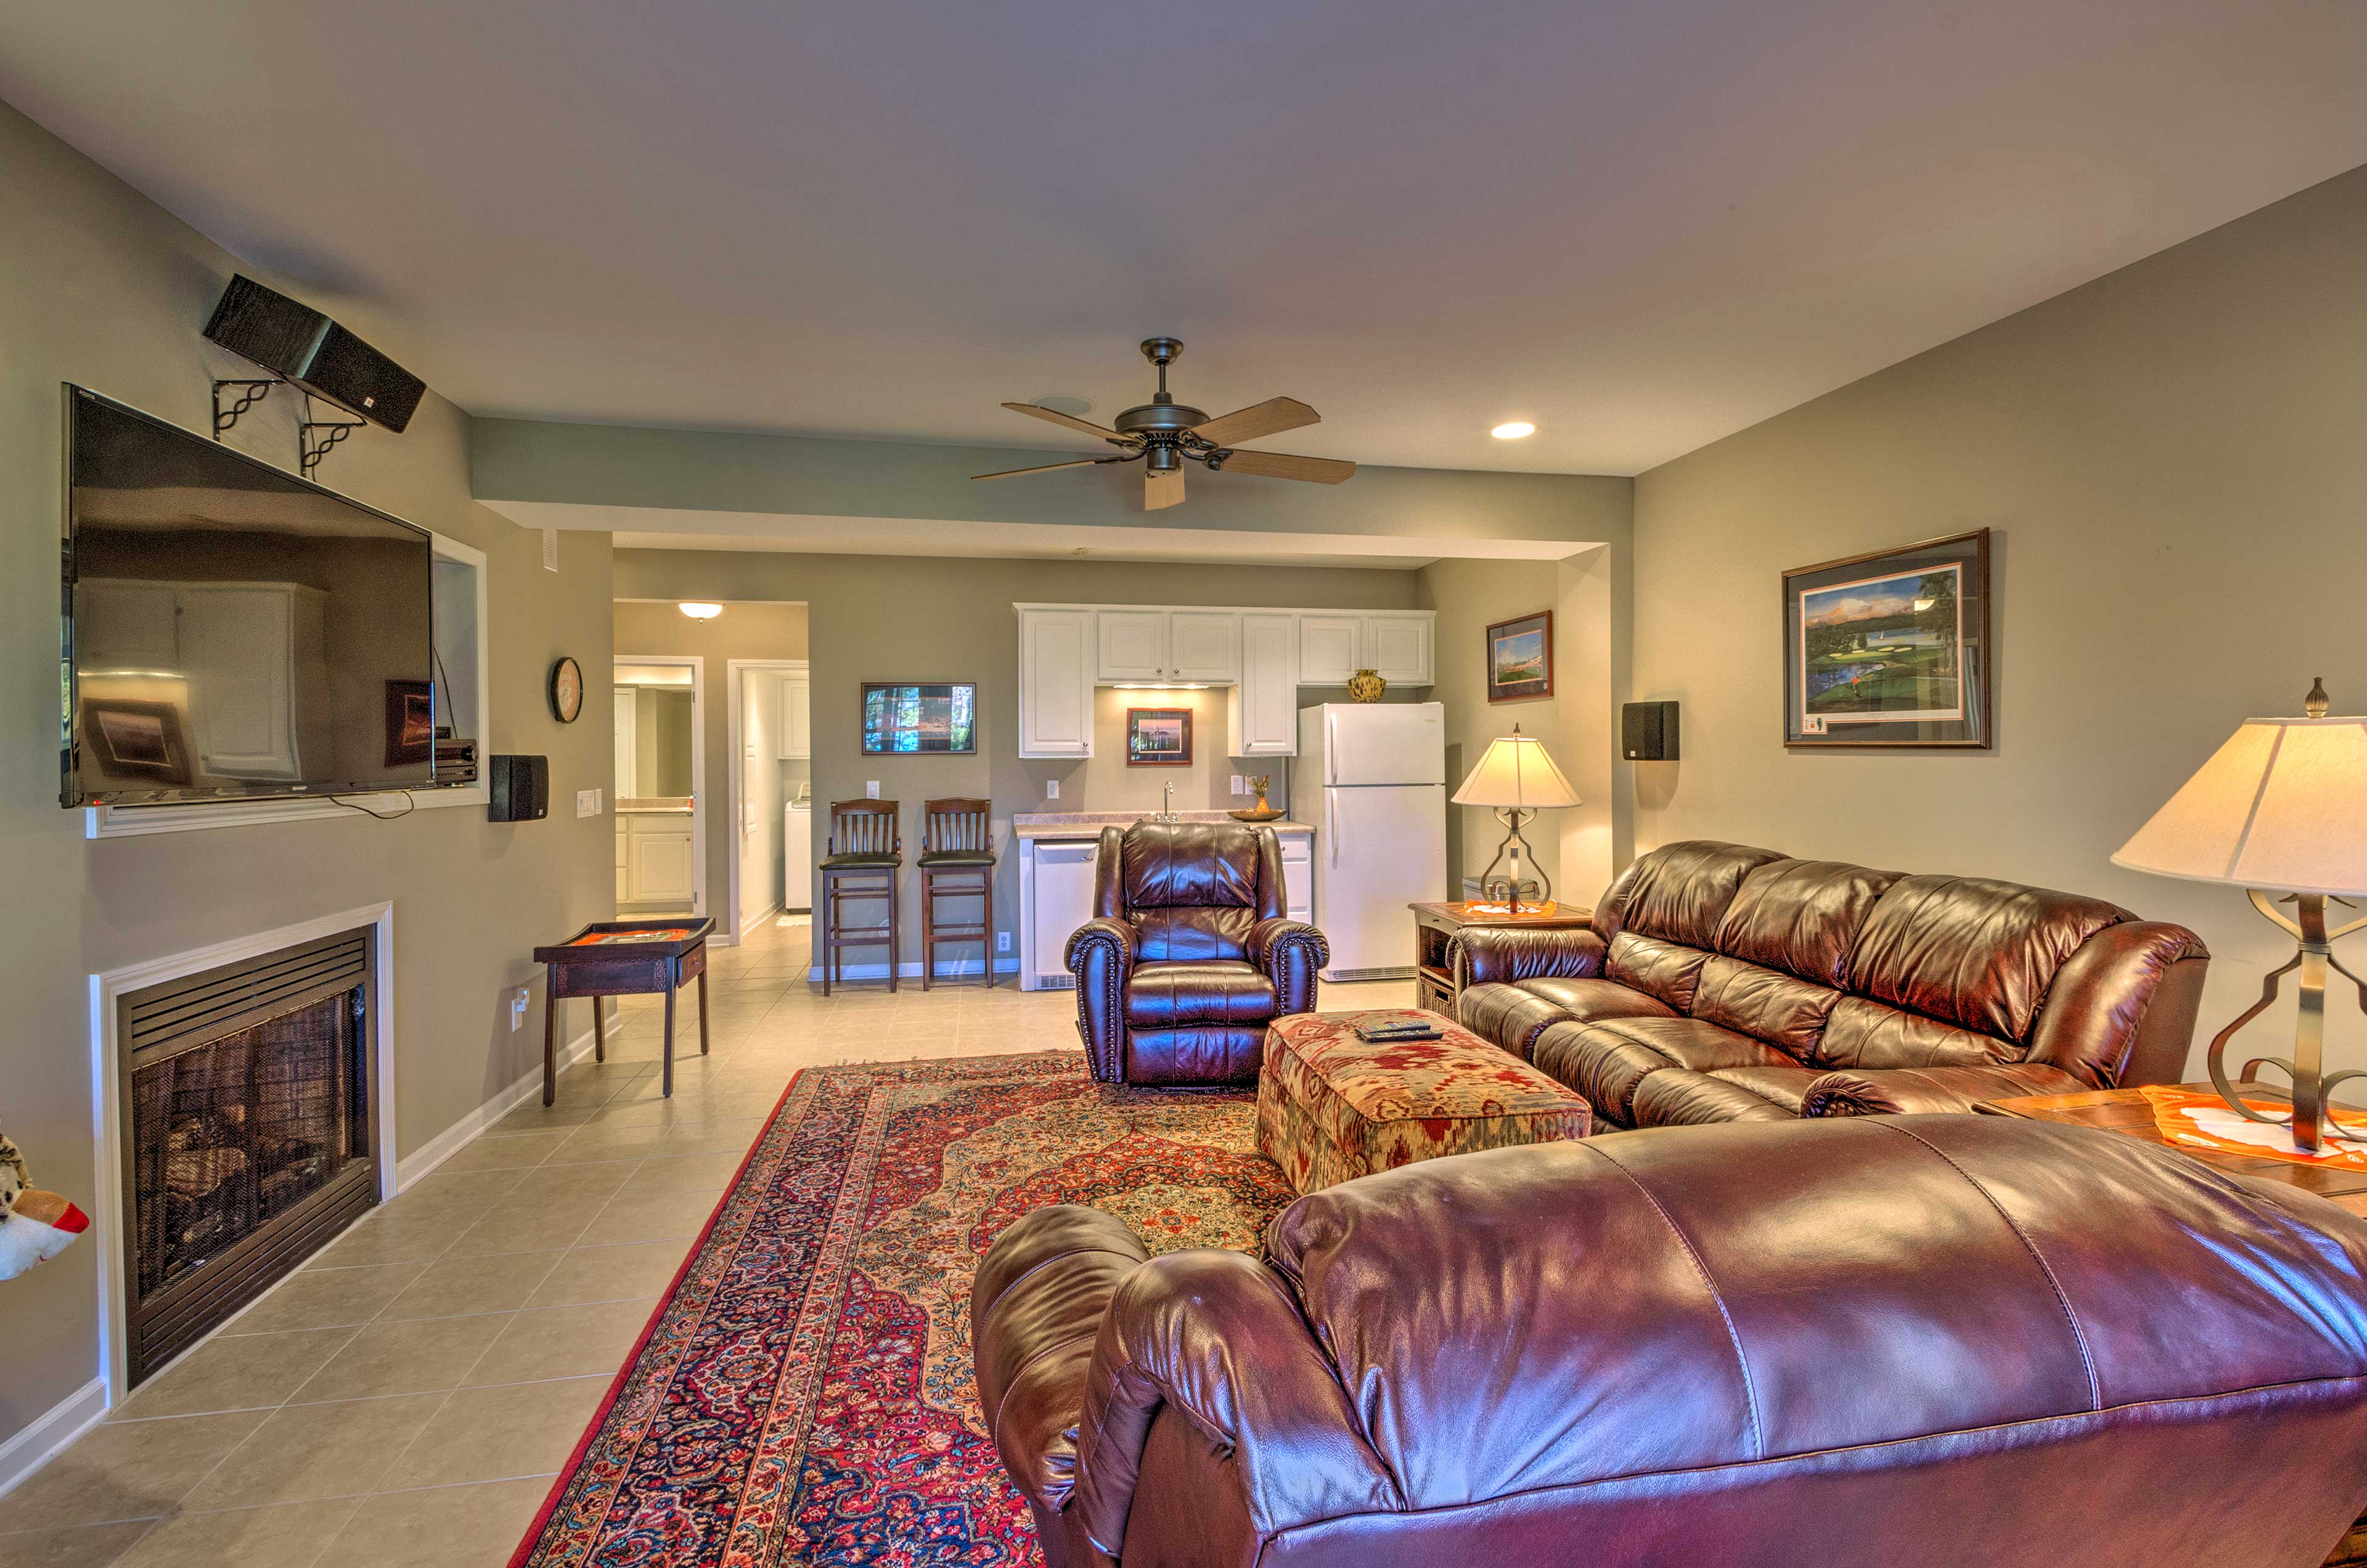 Media Room | Gas Fireplace | Kitchennette